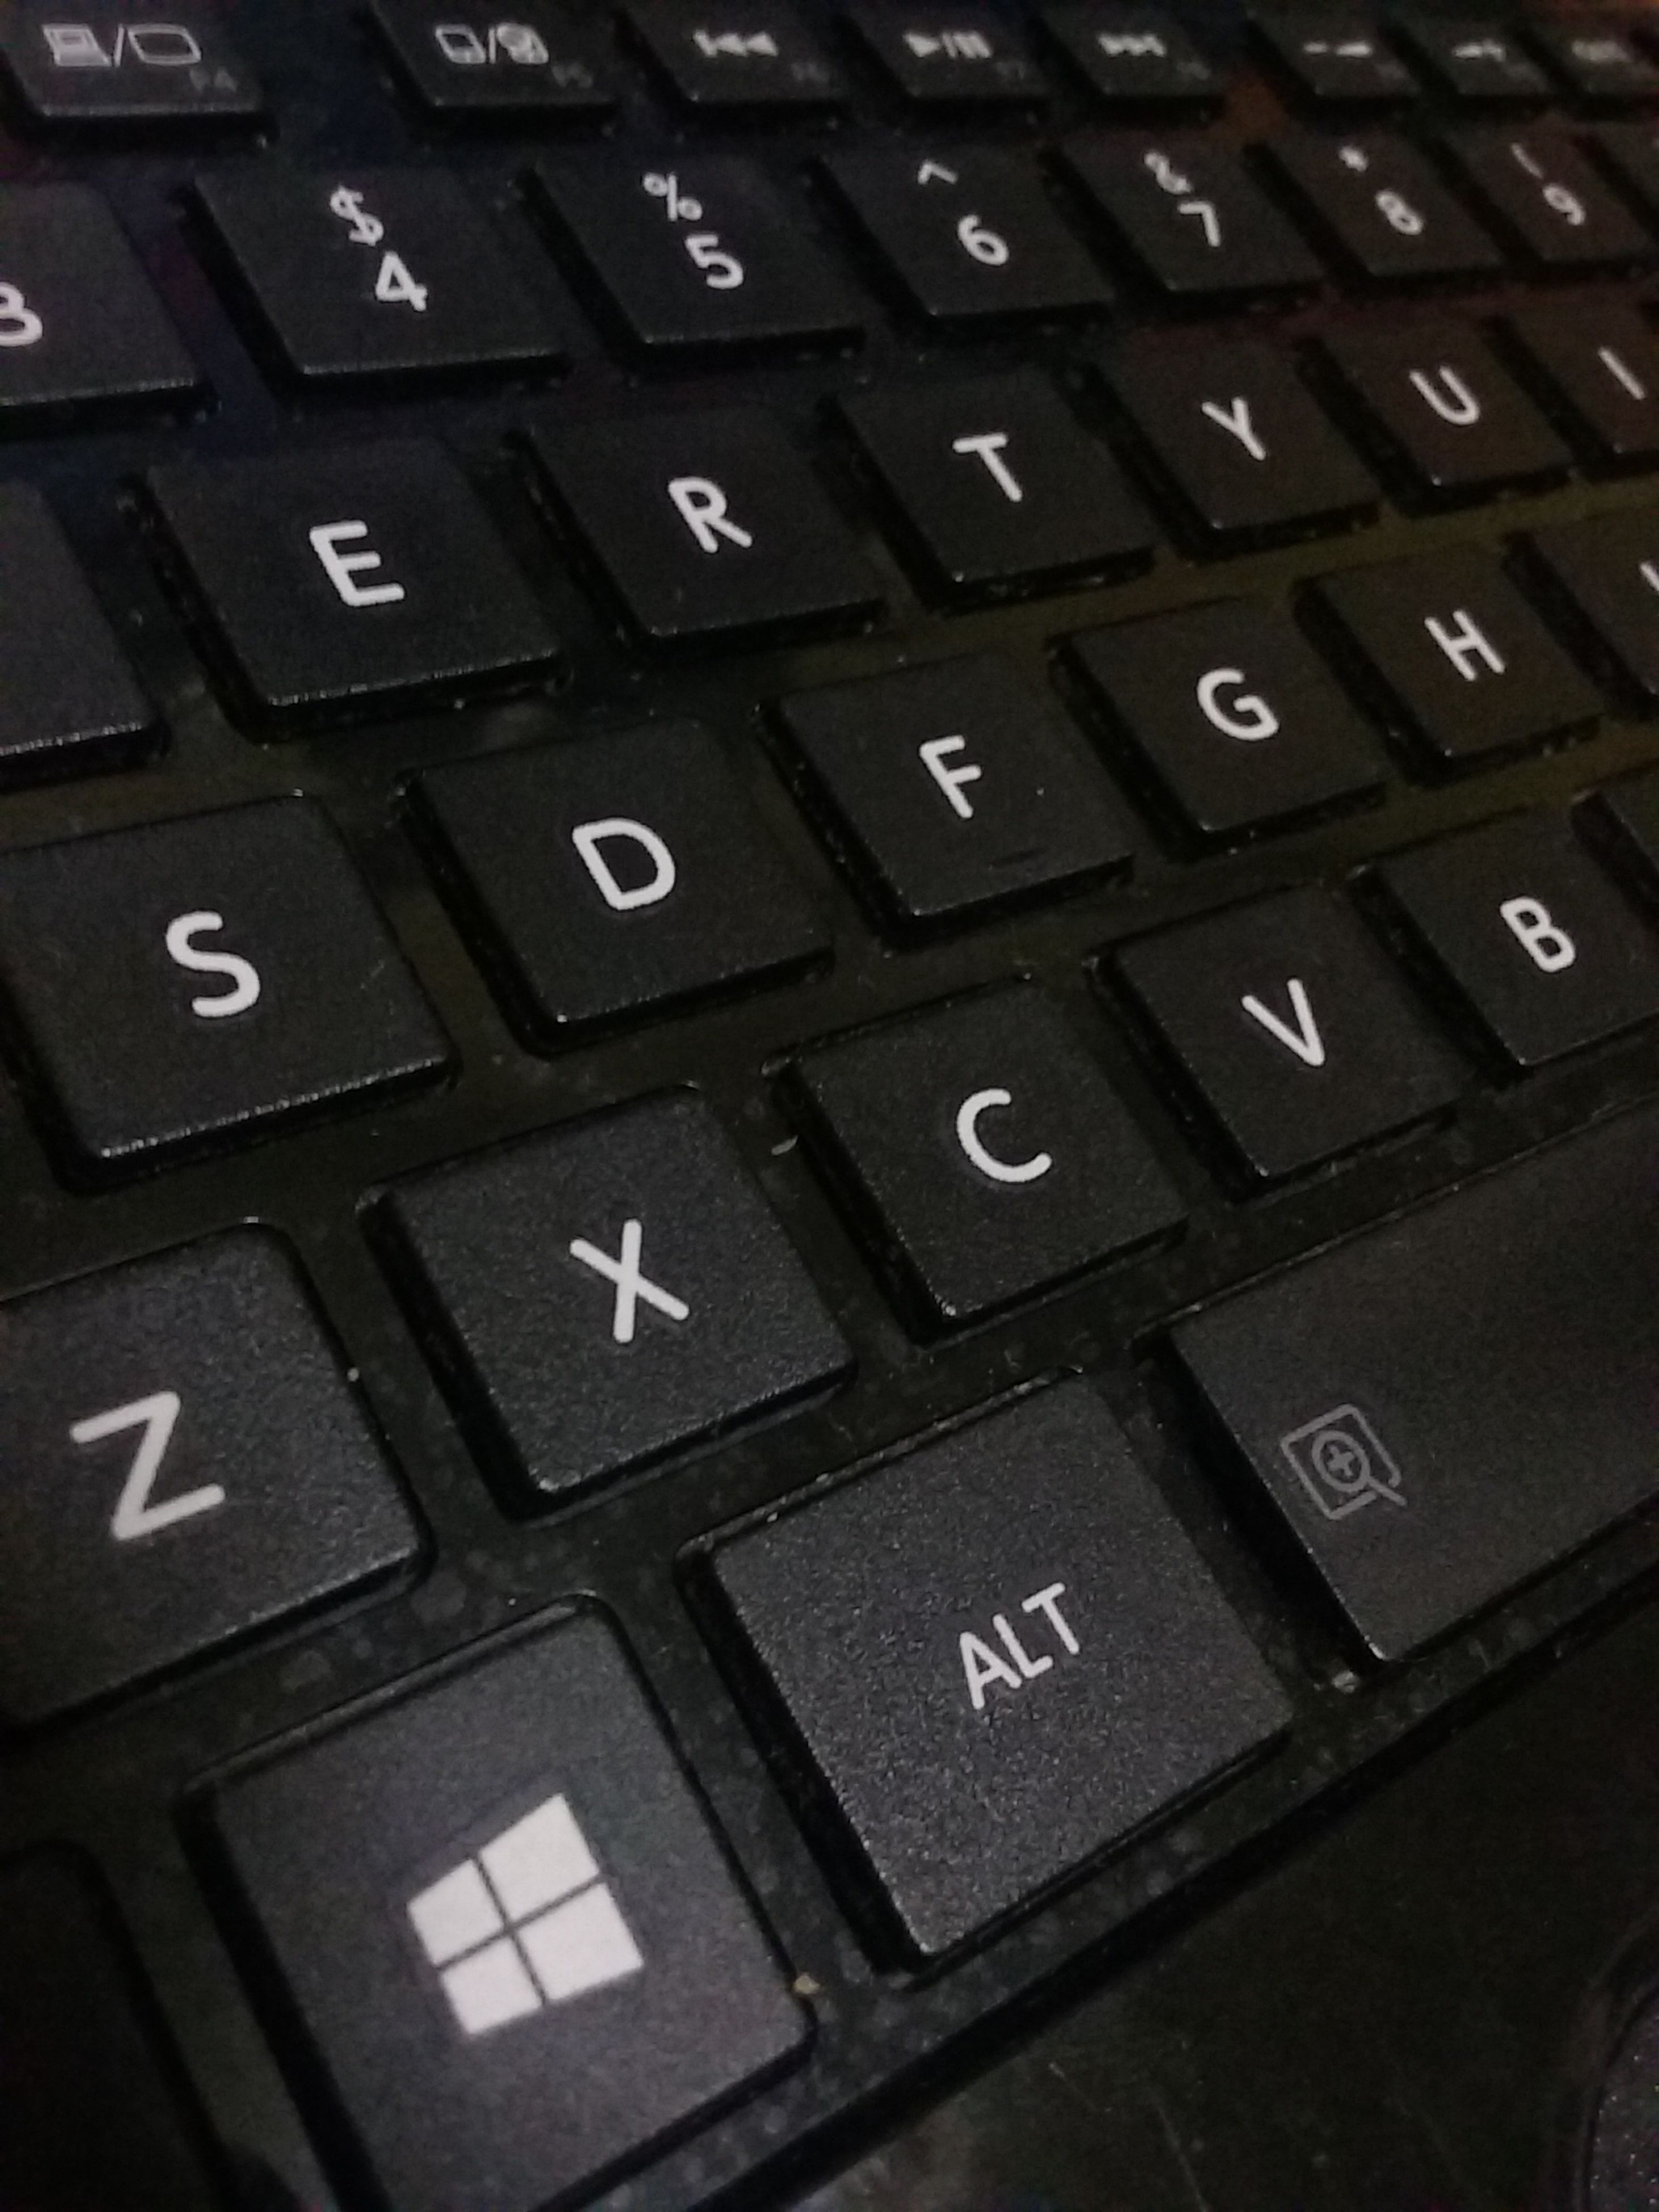 indoors, full frame, communication, number, backgrounds, technology, text, close-up, western script, connection, alphabet, no people, computer keyboard, capital letter, computer key, pattern, repetition, control, high angle view, square shape